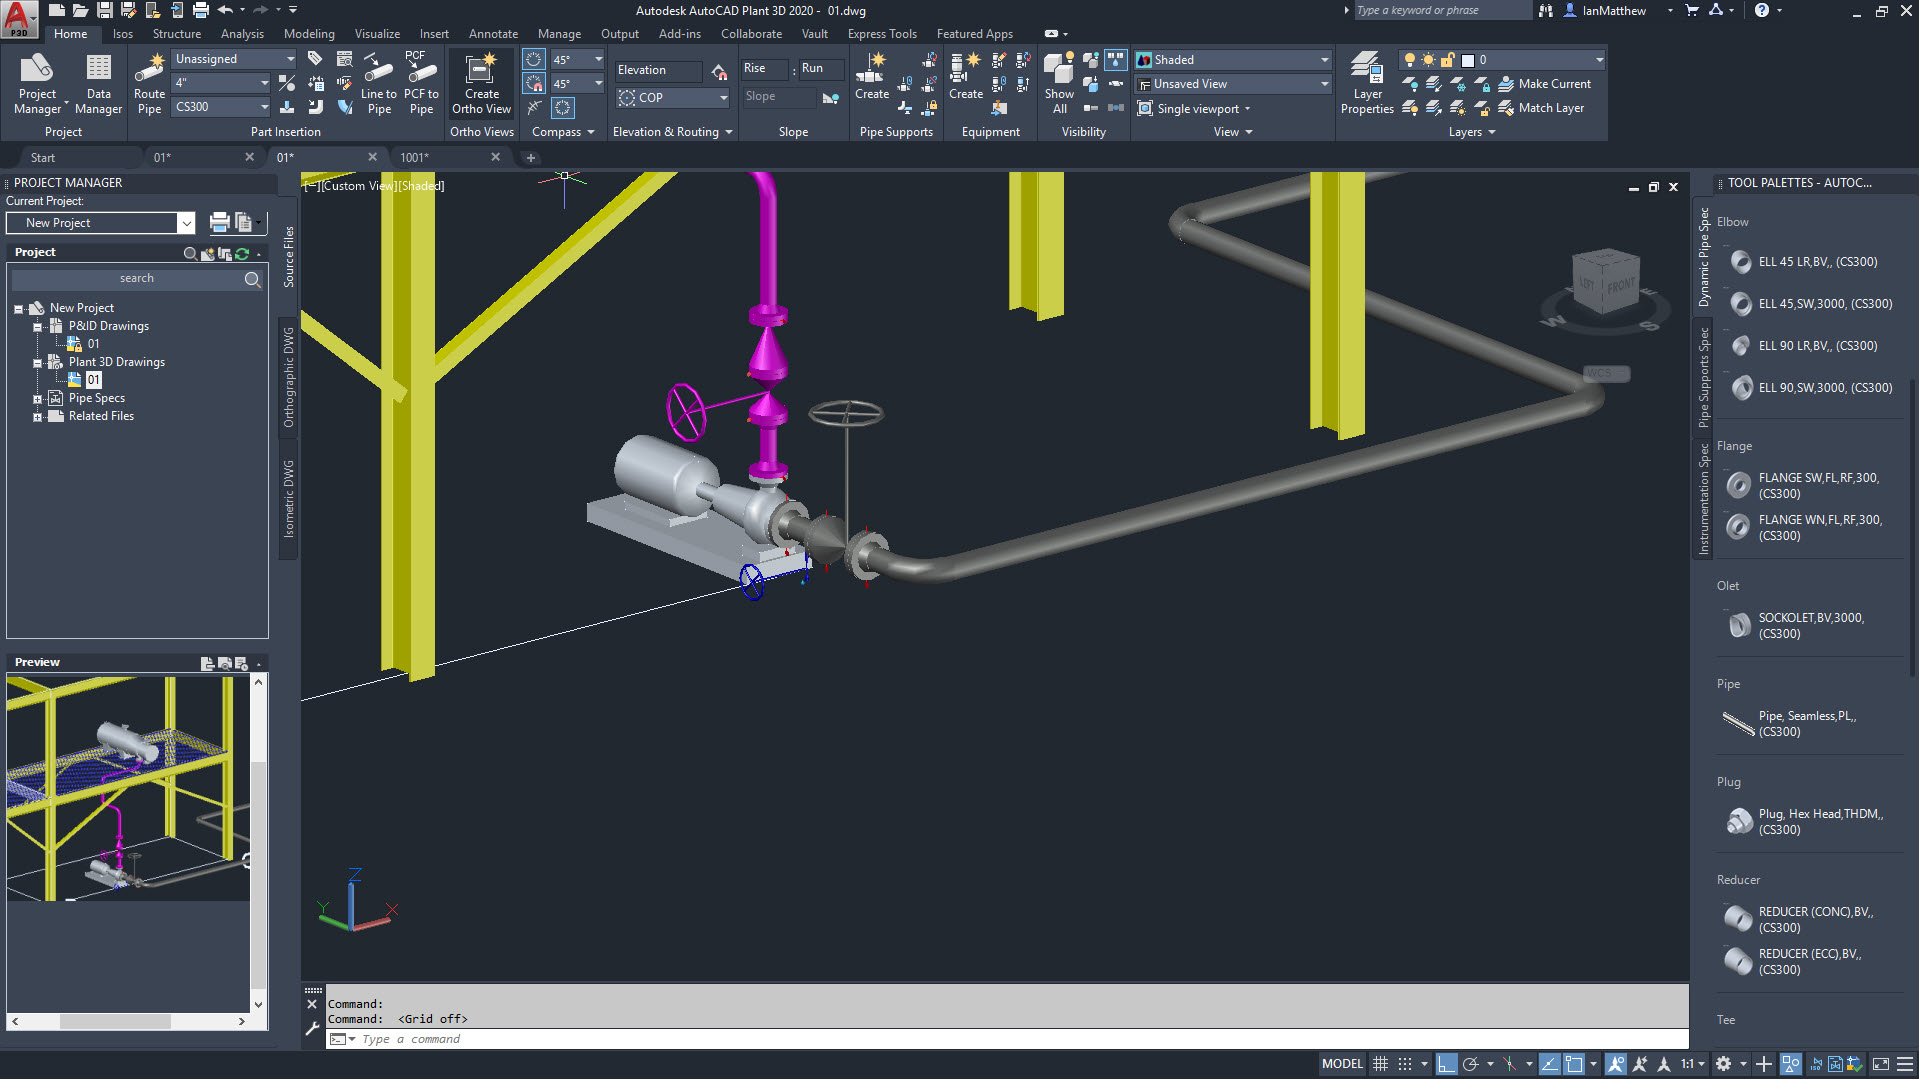 Working with Autodesk AutoCAD Plant 3D 2020 full license